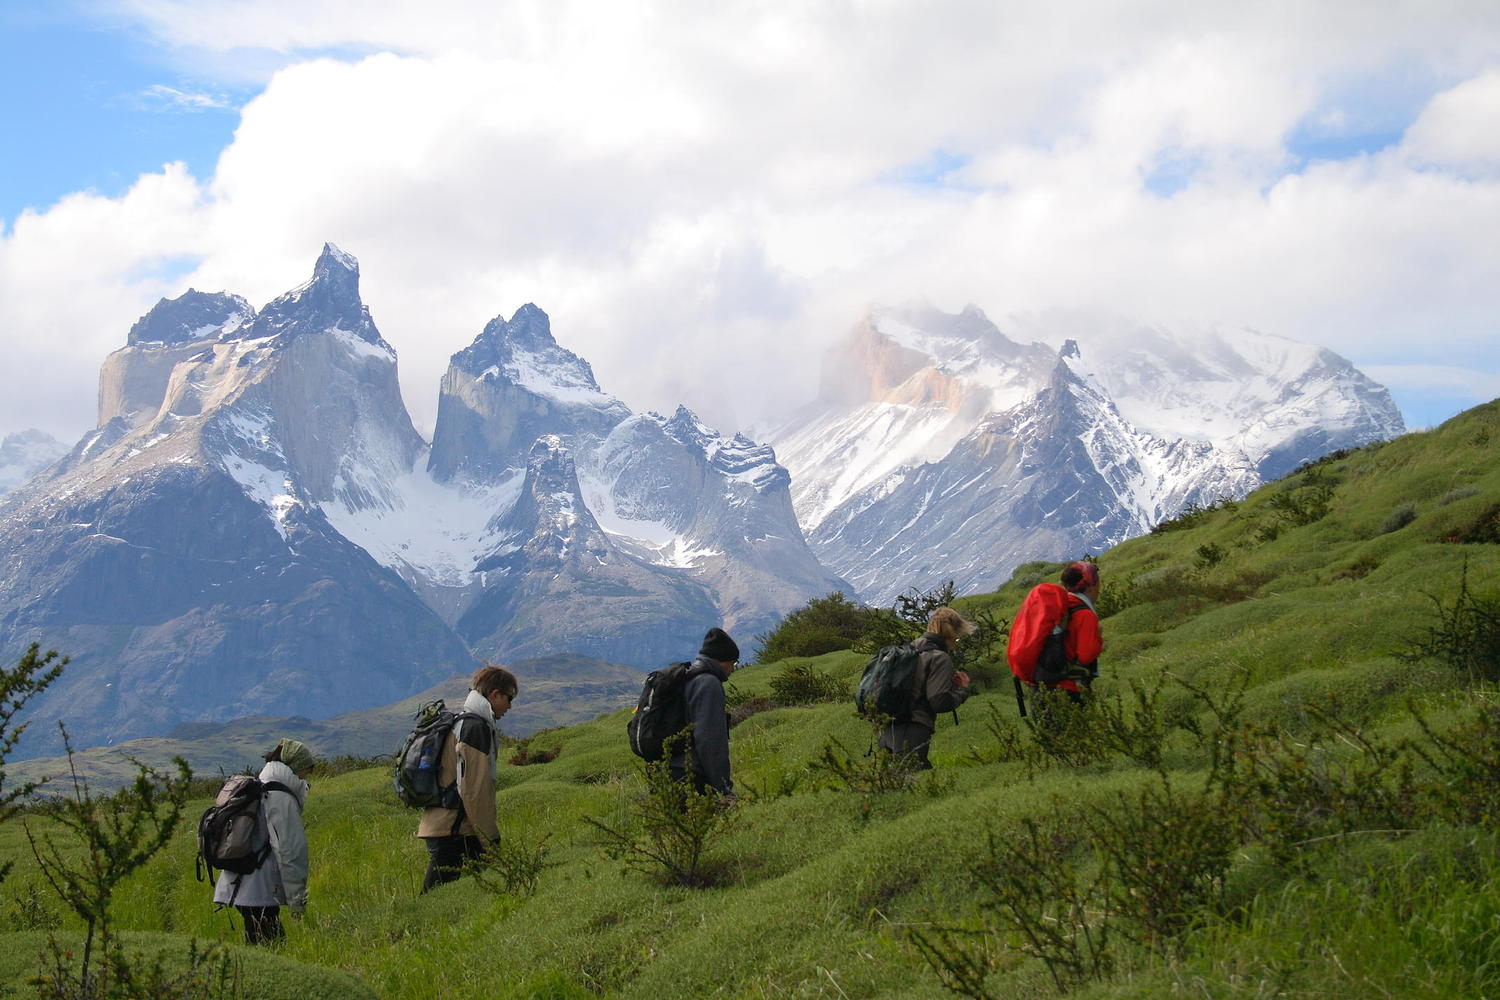 Hiking in the shadow of Paine's Cuernos (Horns)